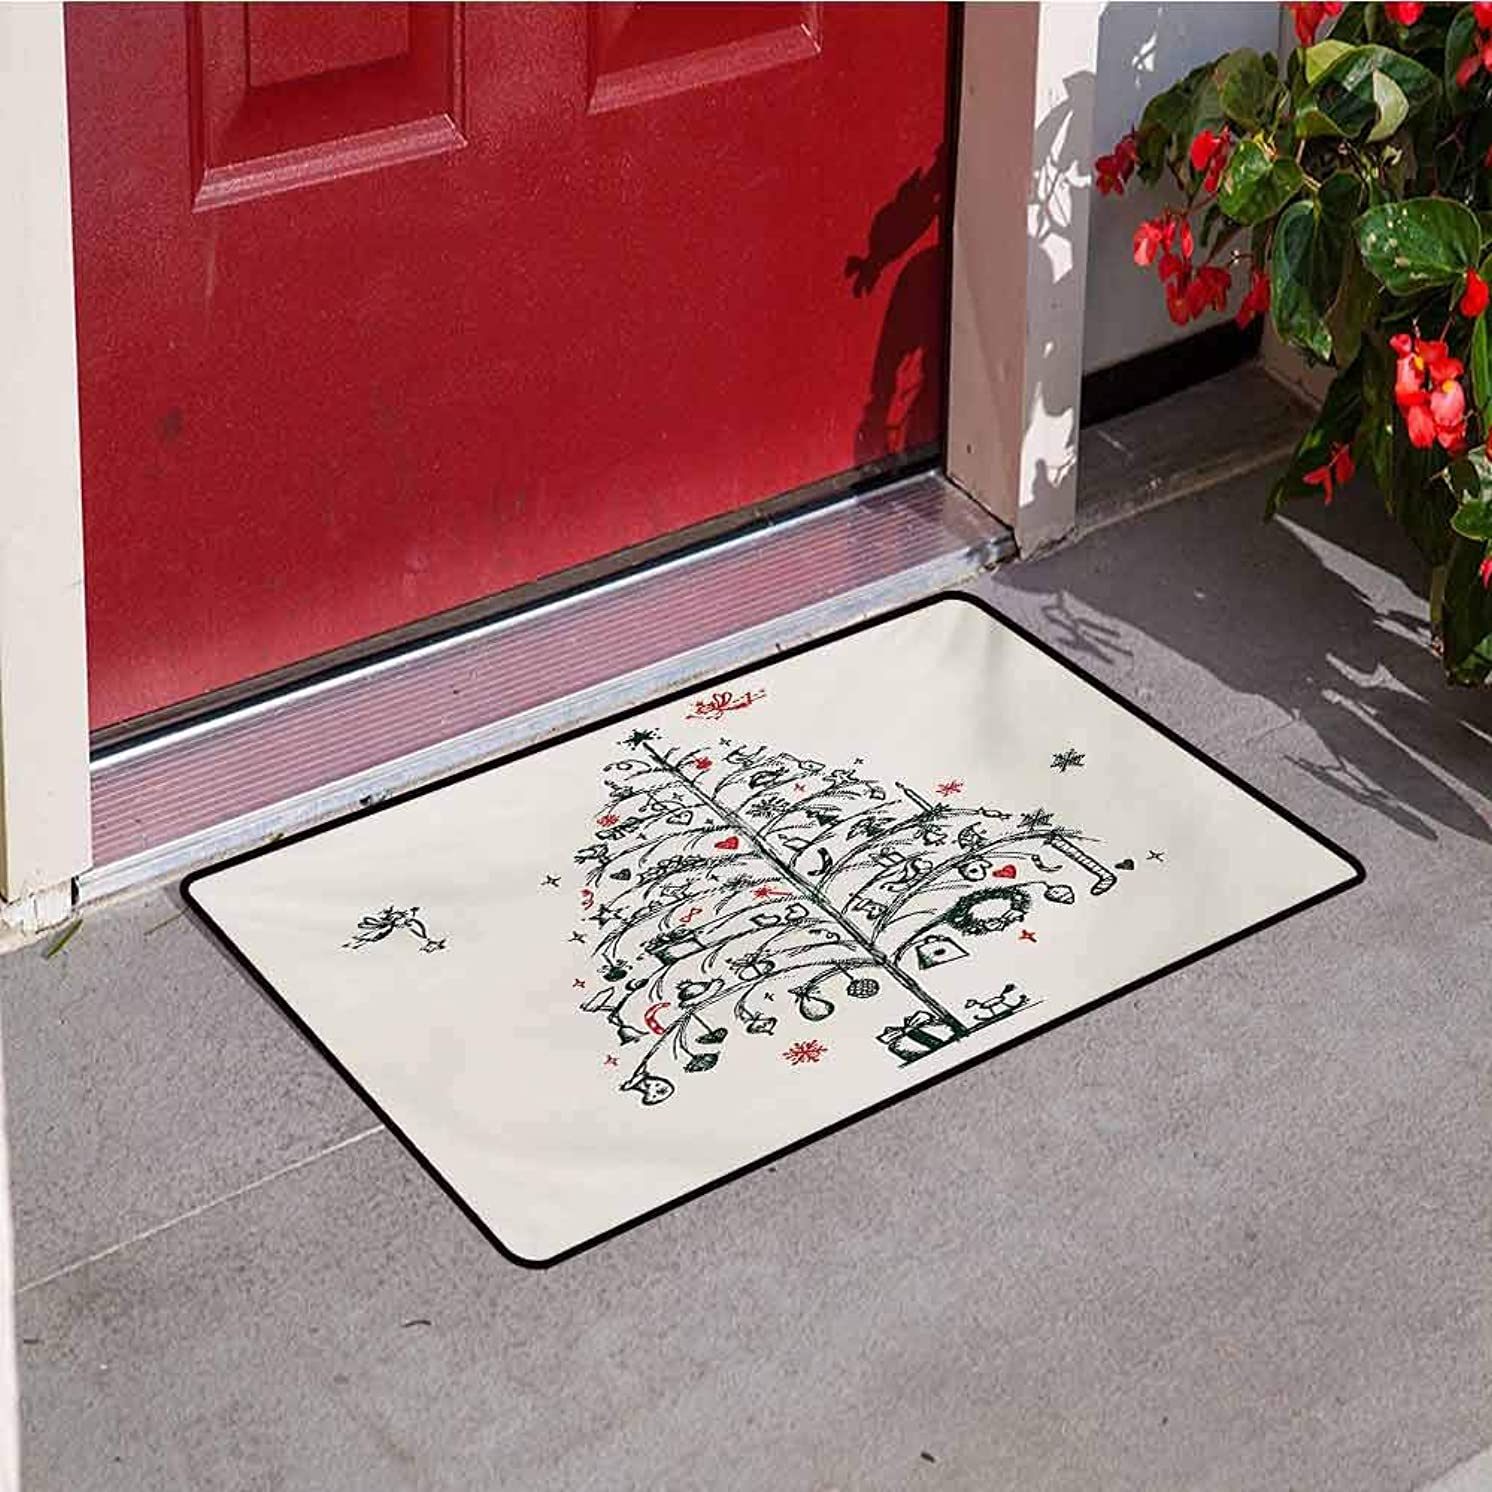 Jinguizi Christmas Inlet Outdoor Door mat Fairies with Wands and Tree Hand Drawn Style with Wreath and Stockings Image Catch dust Snow and mud W23.6 x L35.4 Inch Red and Green